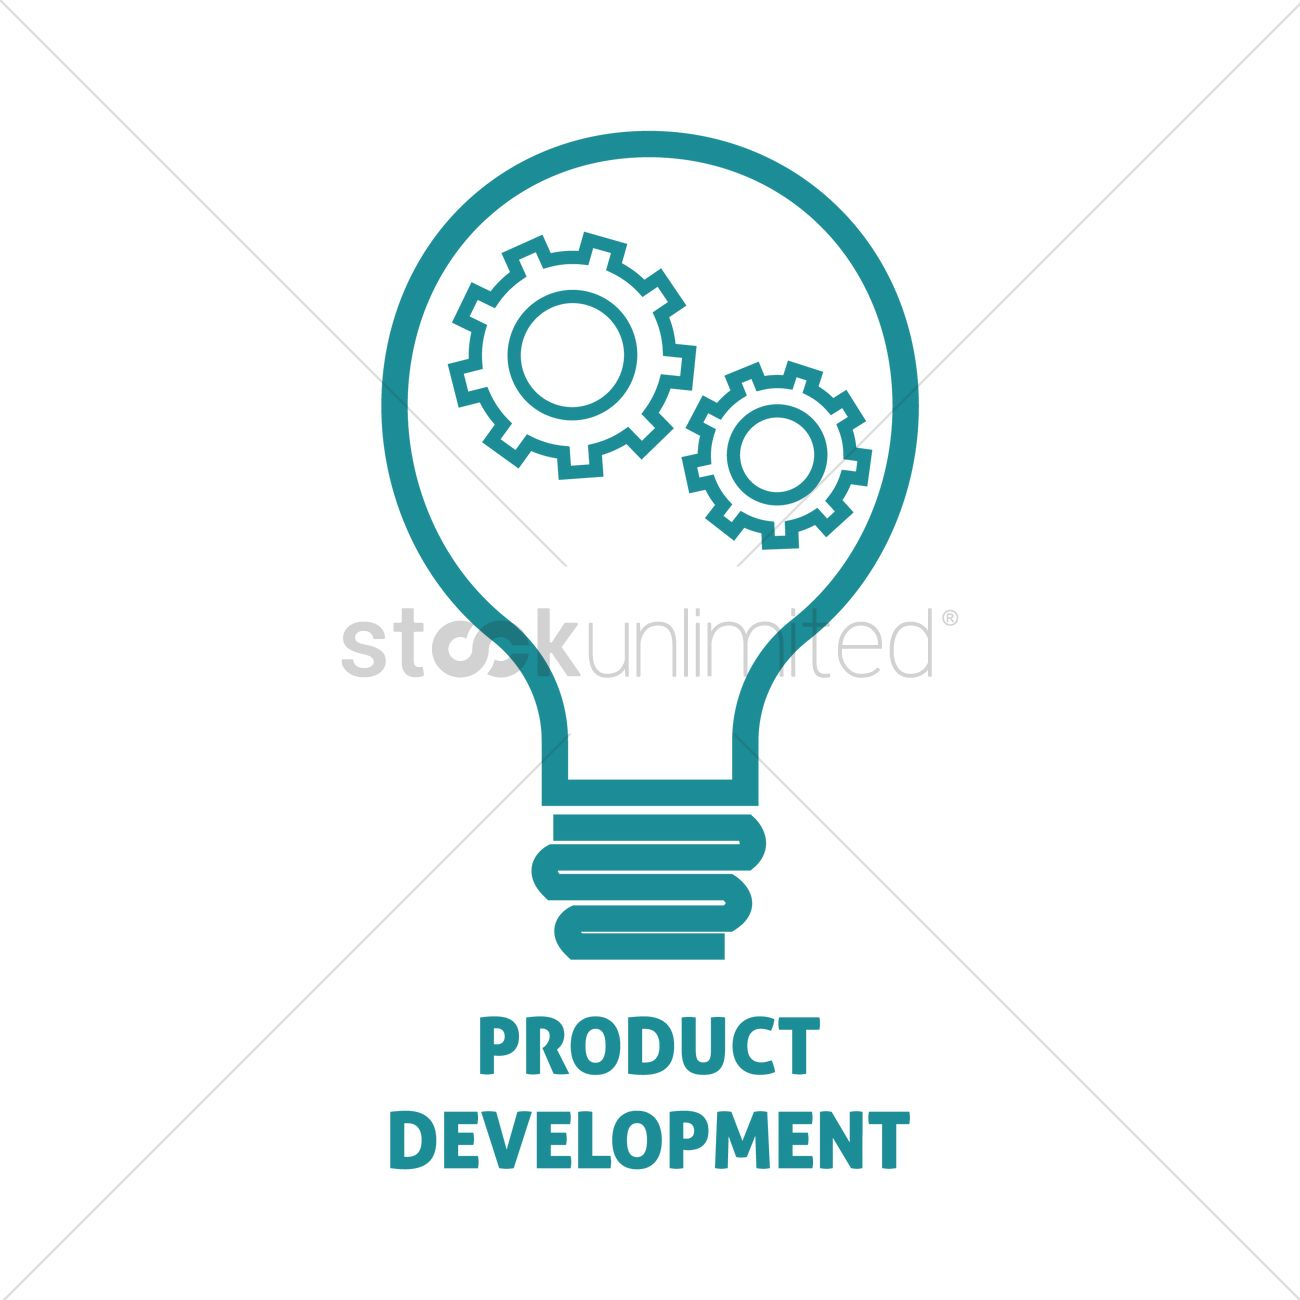 Product development vector image 1596463 stockunlimited for New product design and development